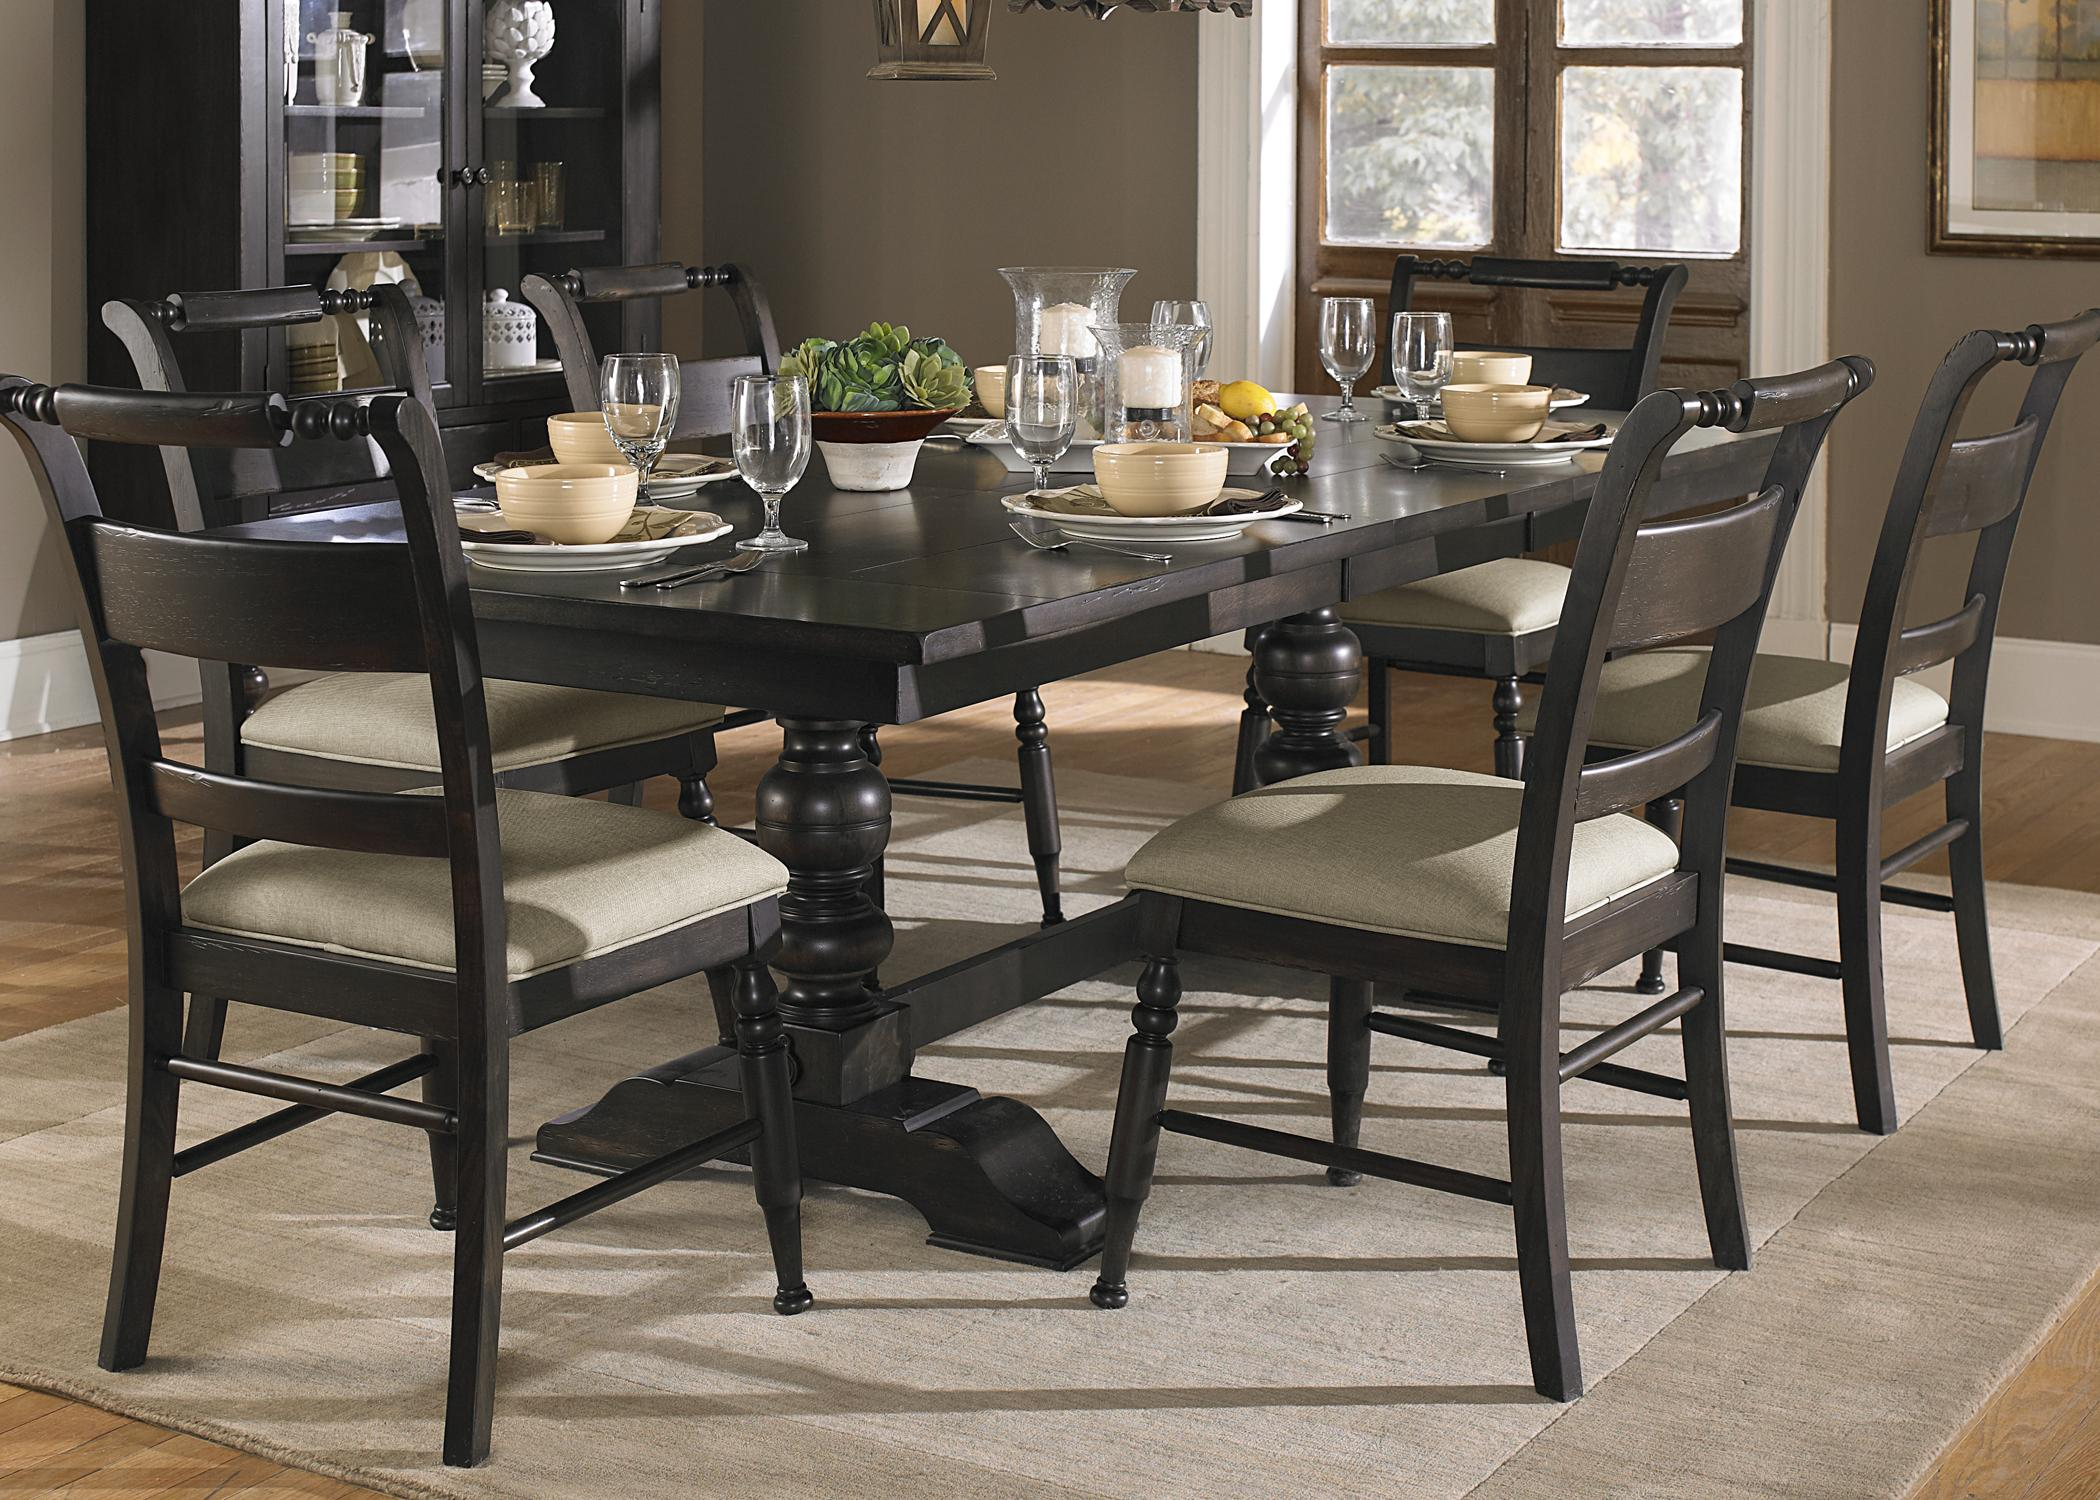 7 piece trestle dining room table set by liberty furniture for 7 piece living room set with tv